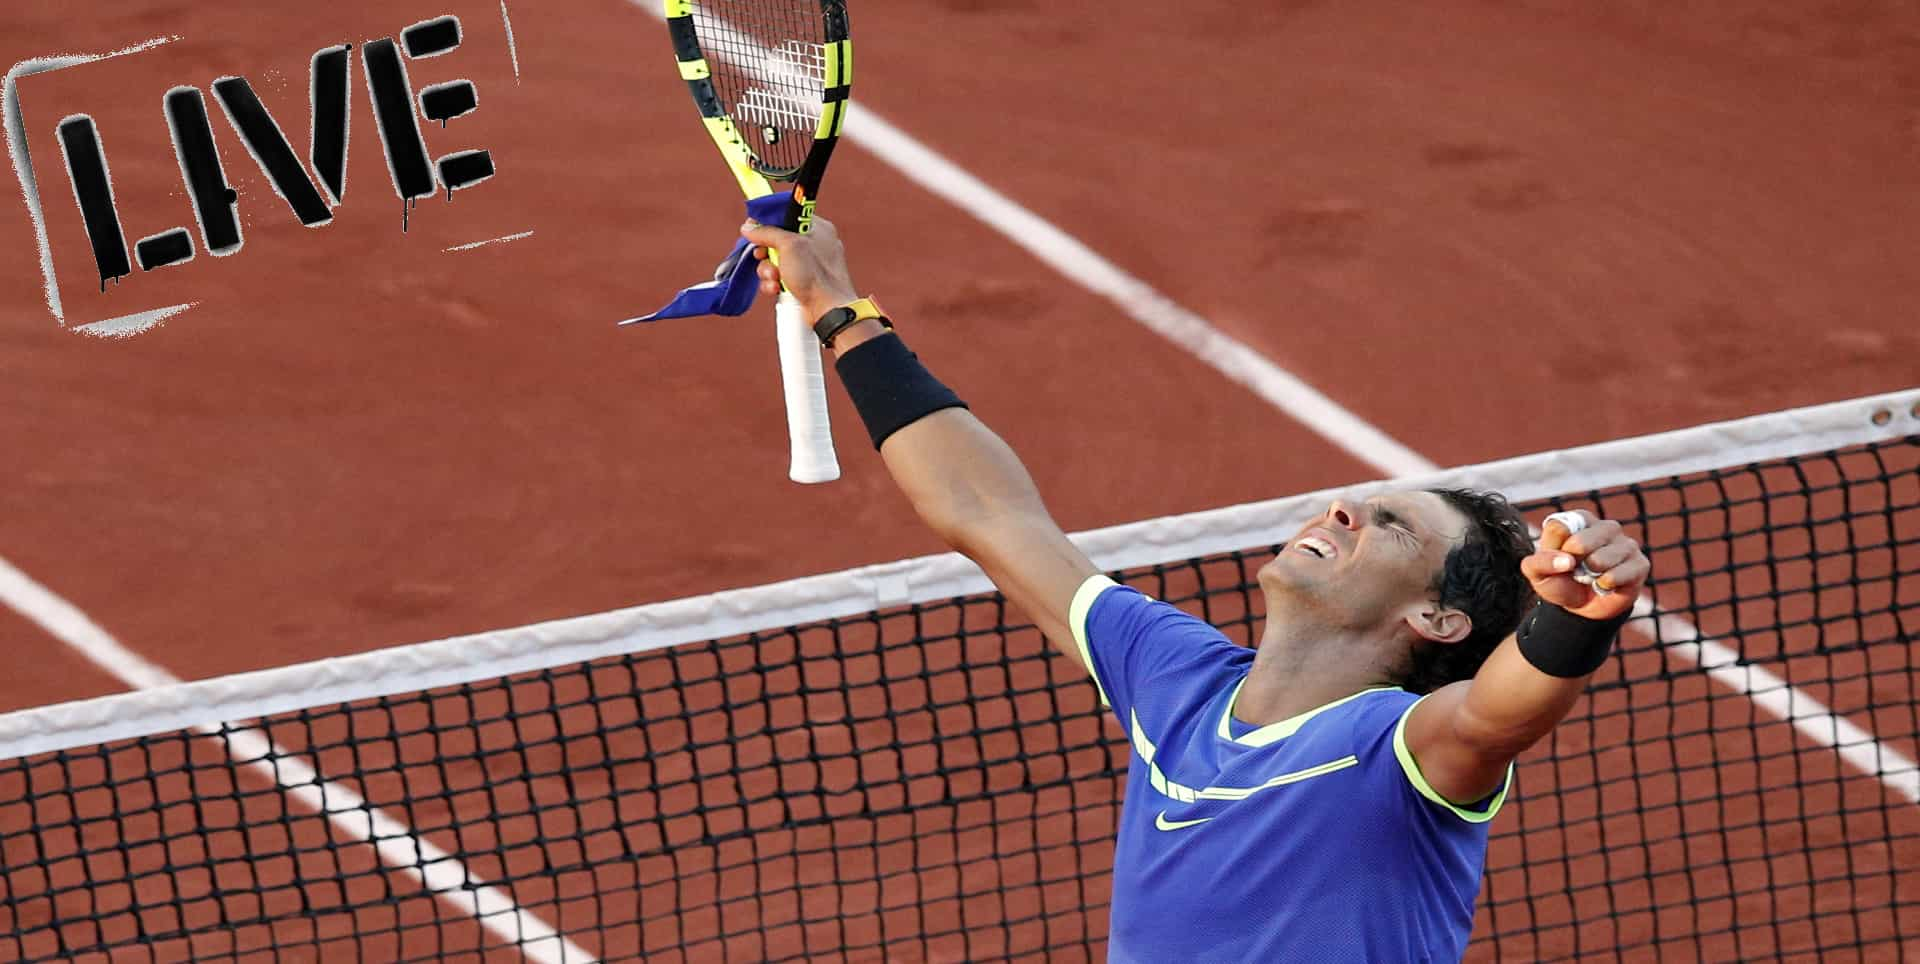 French Open Online | Live Roland Garros Tennis 2019 slider